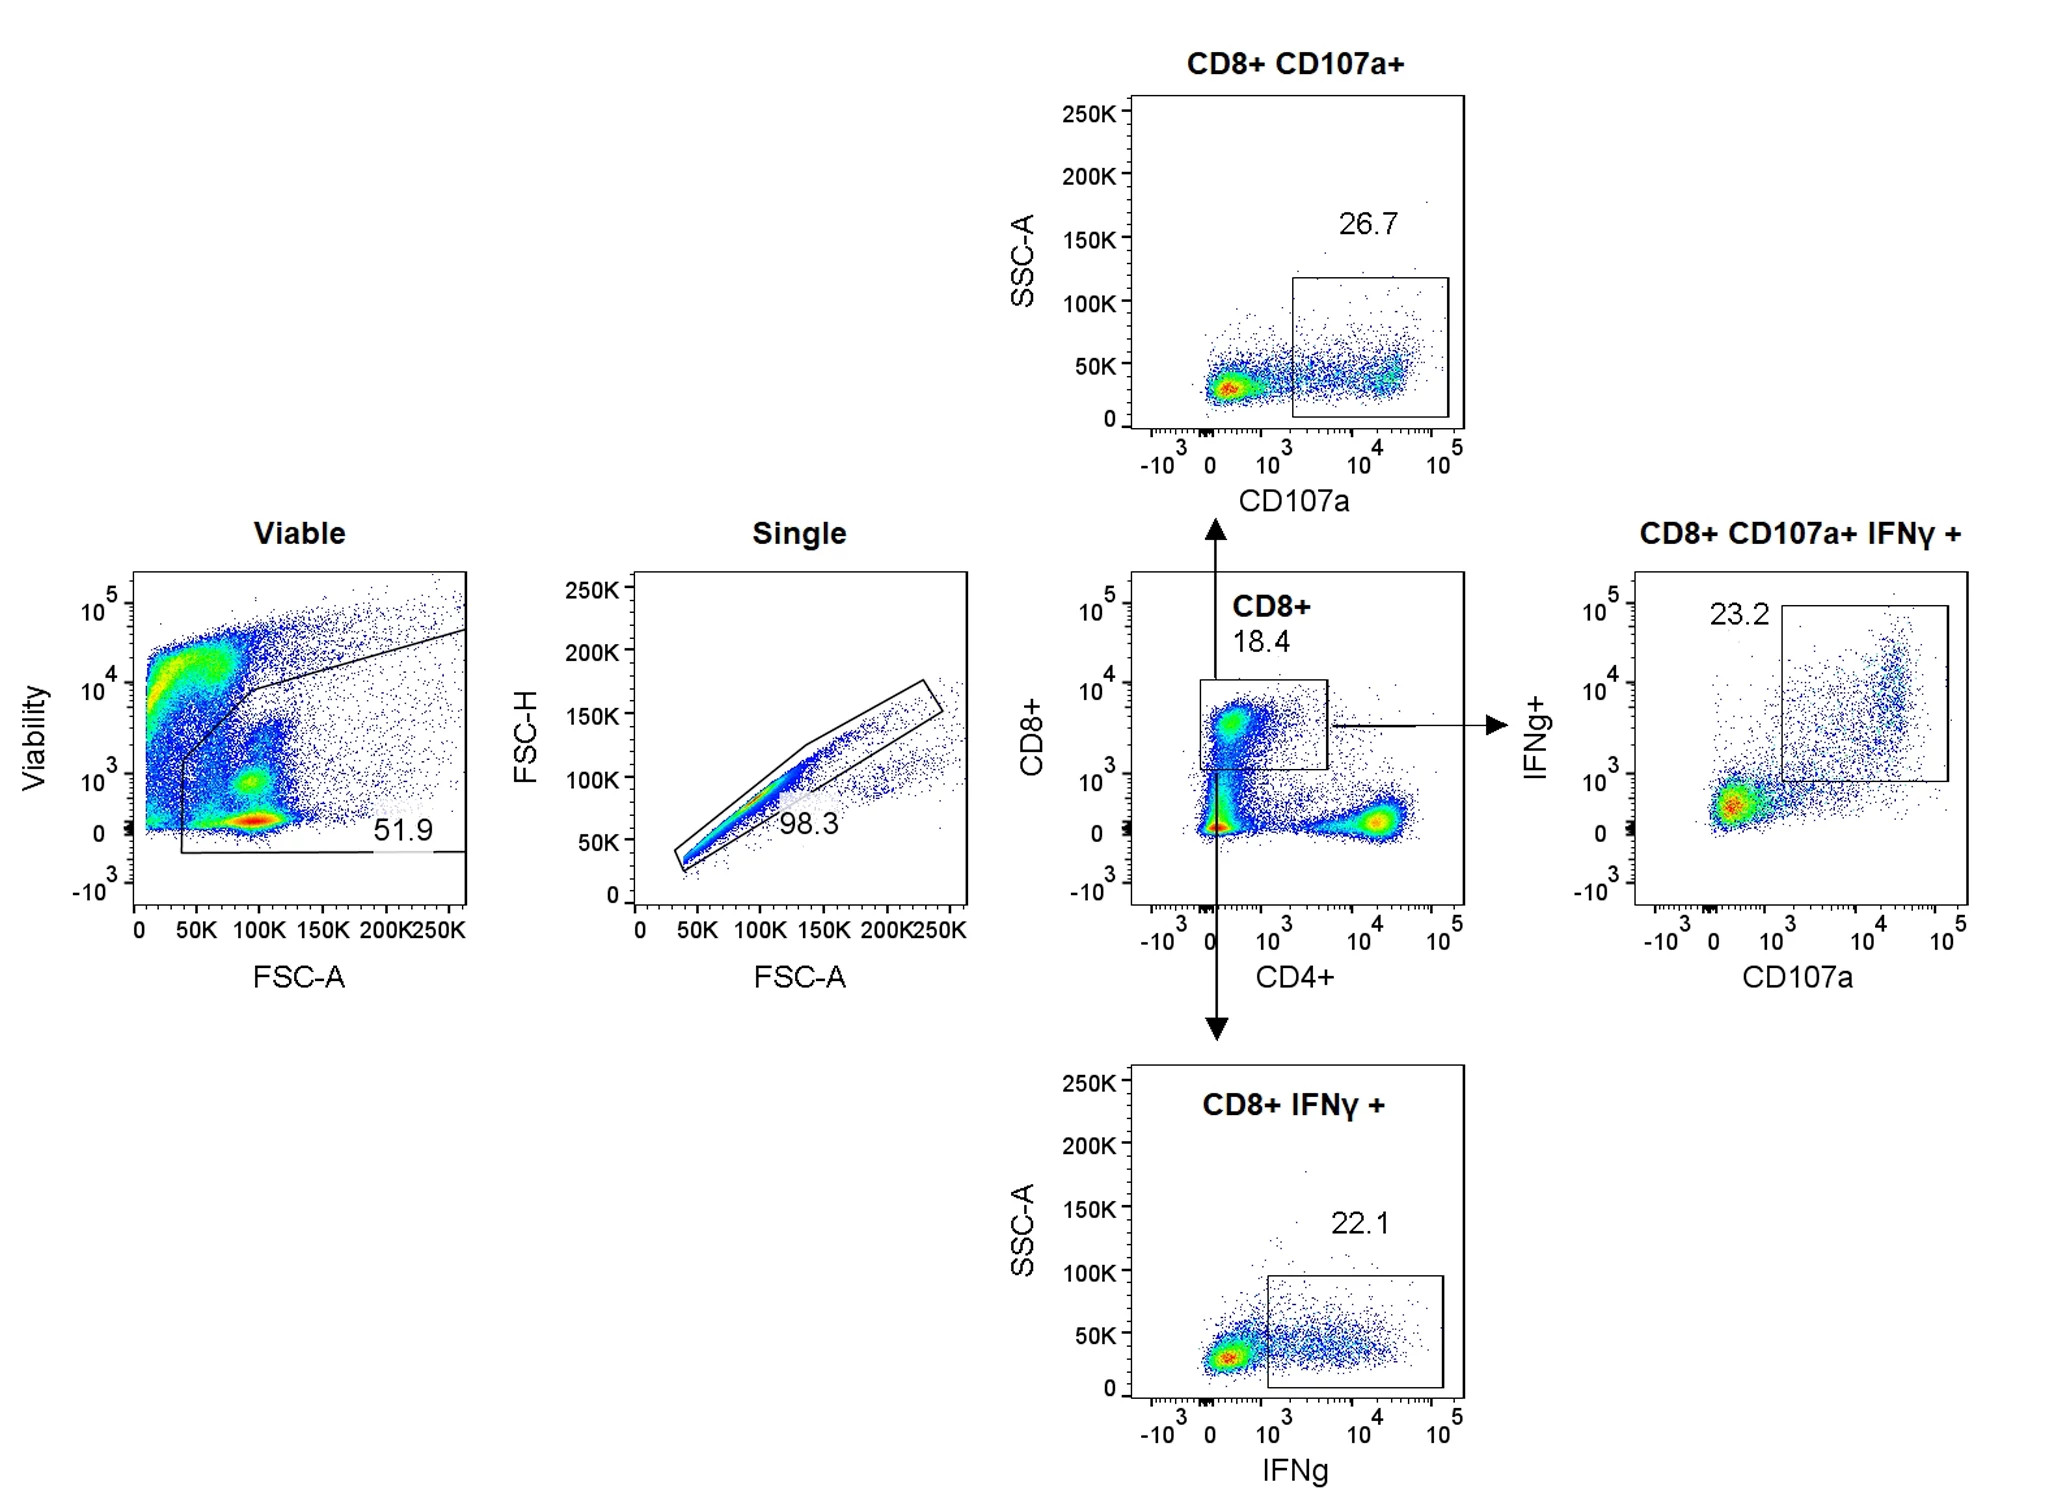 Graphs showing how Anti-LAG3 antibody dose-dependently enhances CD8+ T cell activation